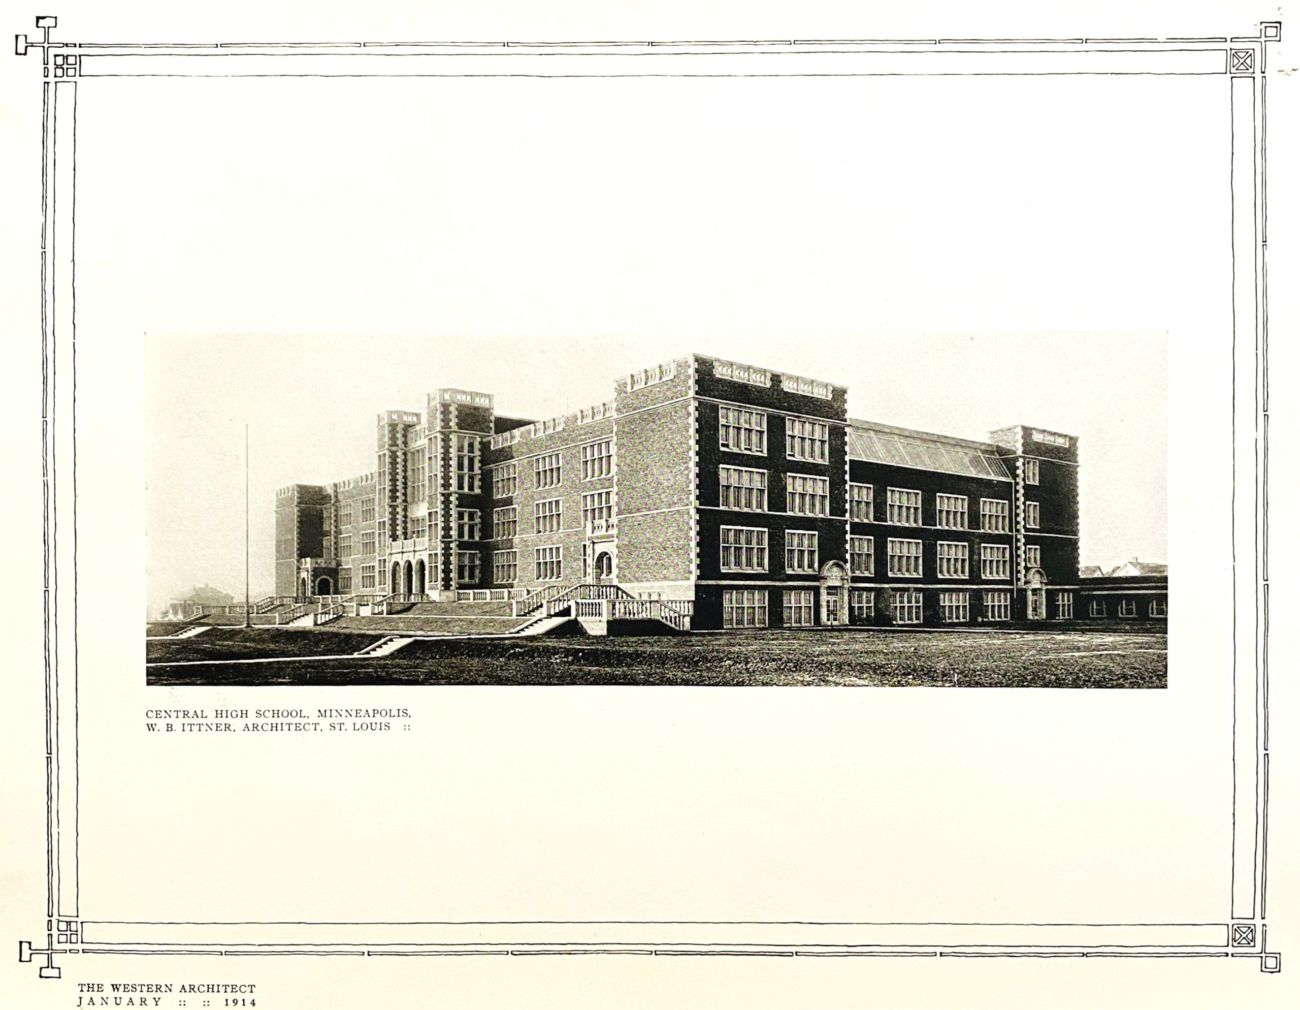 Image of Central High School.